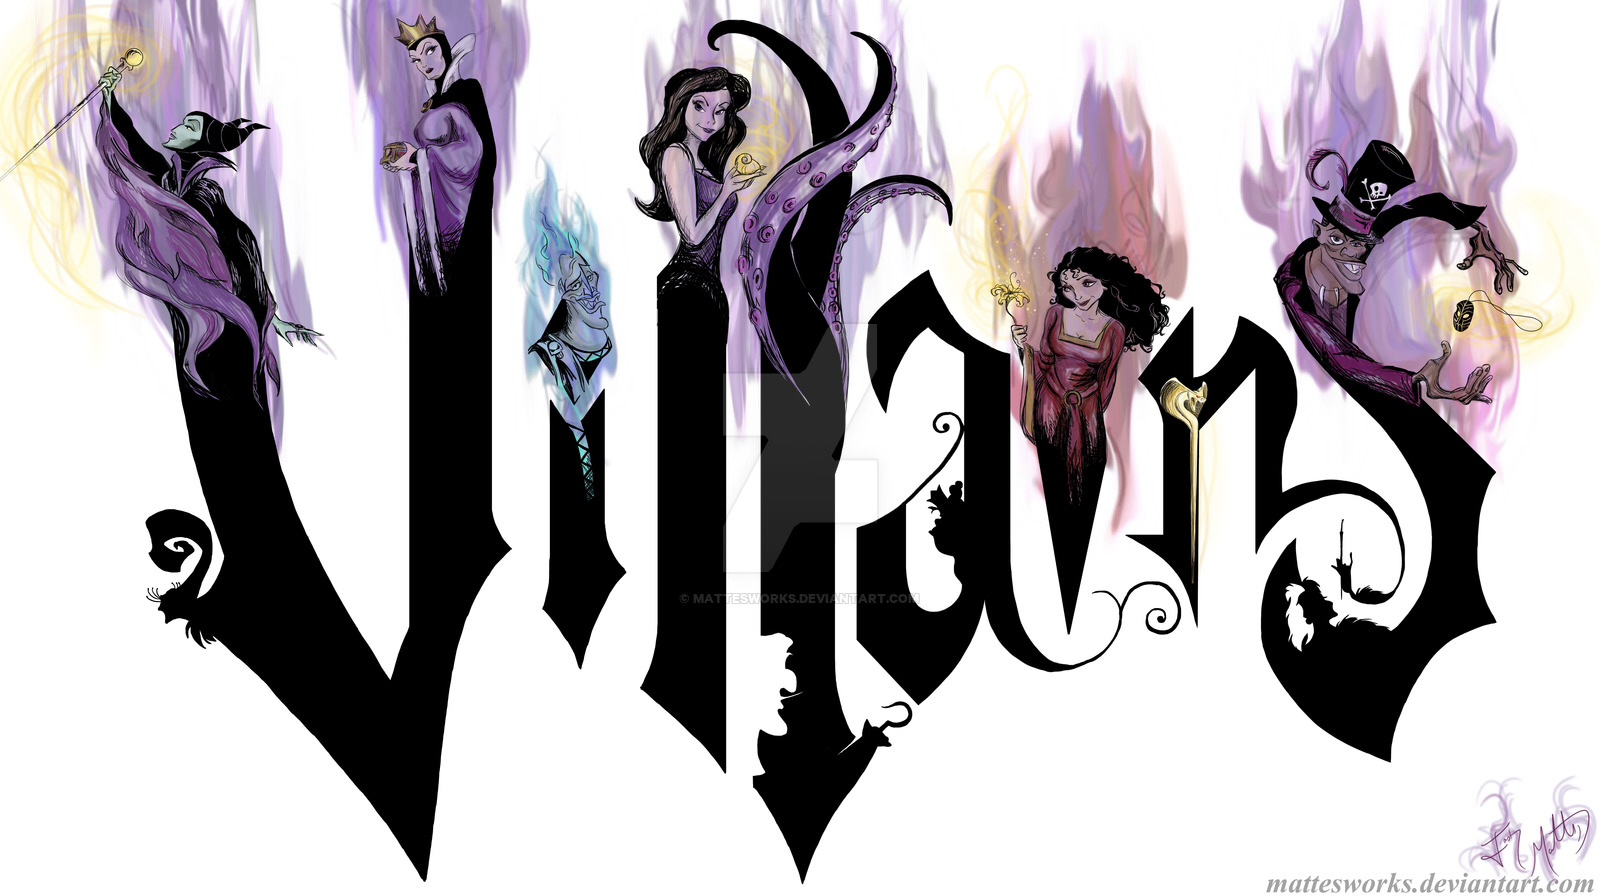 Villans Are Go With Evilness Disney Villains Wallpaper 39055968 Fanpop